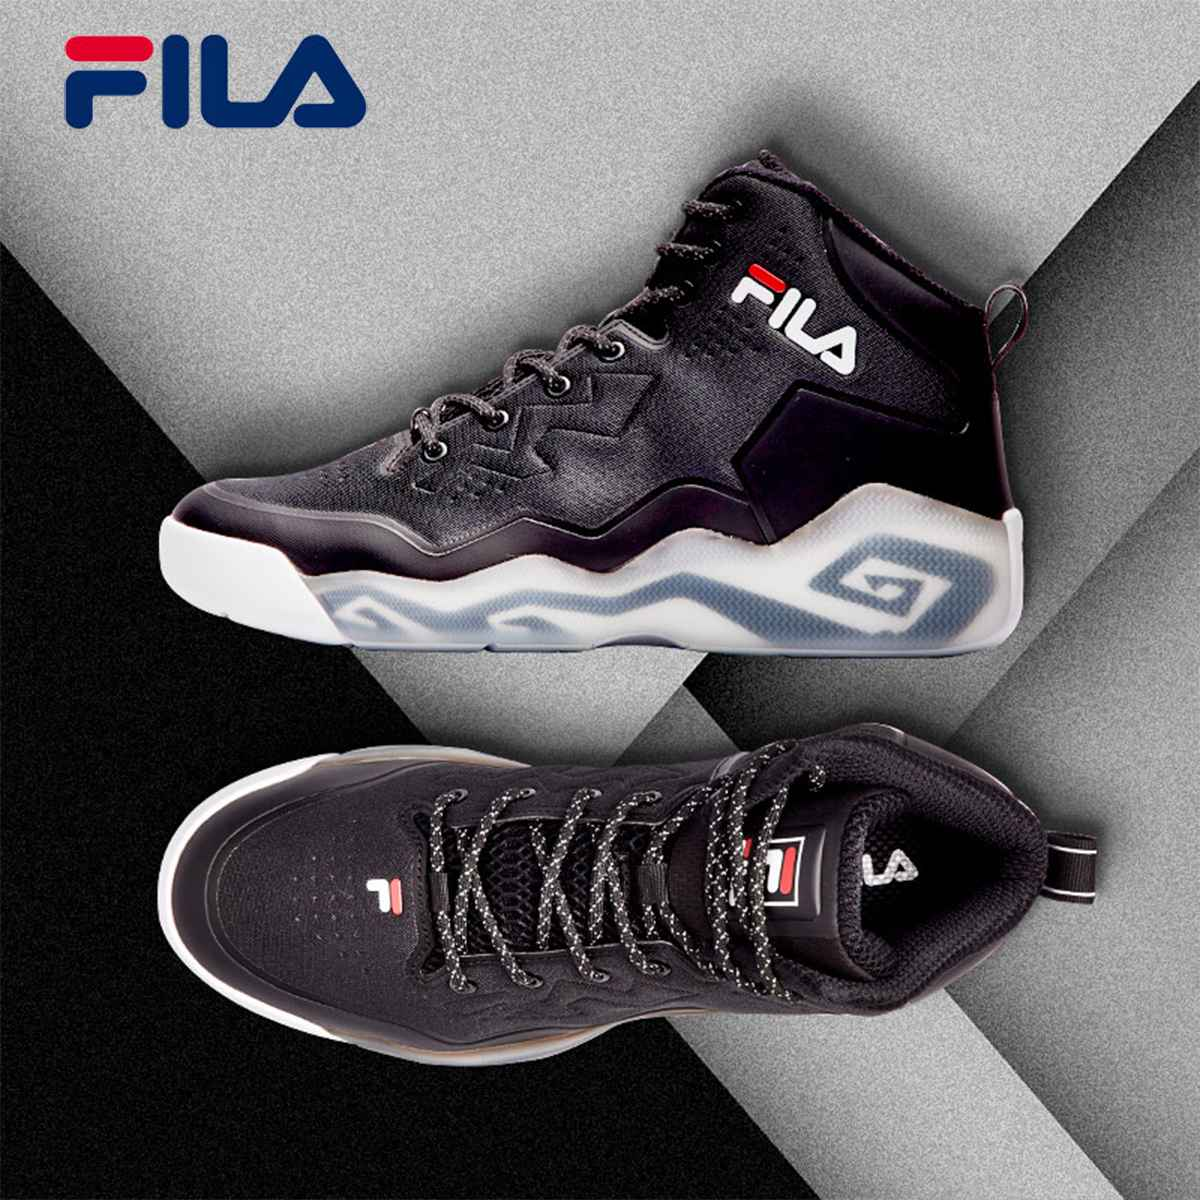 USD 231.79] FILA Fila male BB shoes 2018 autumn new street